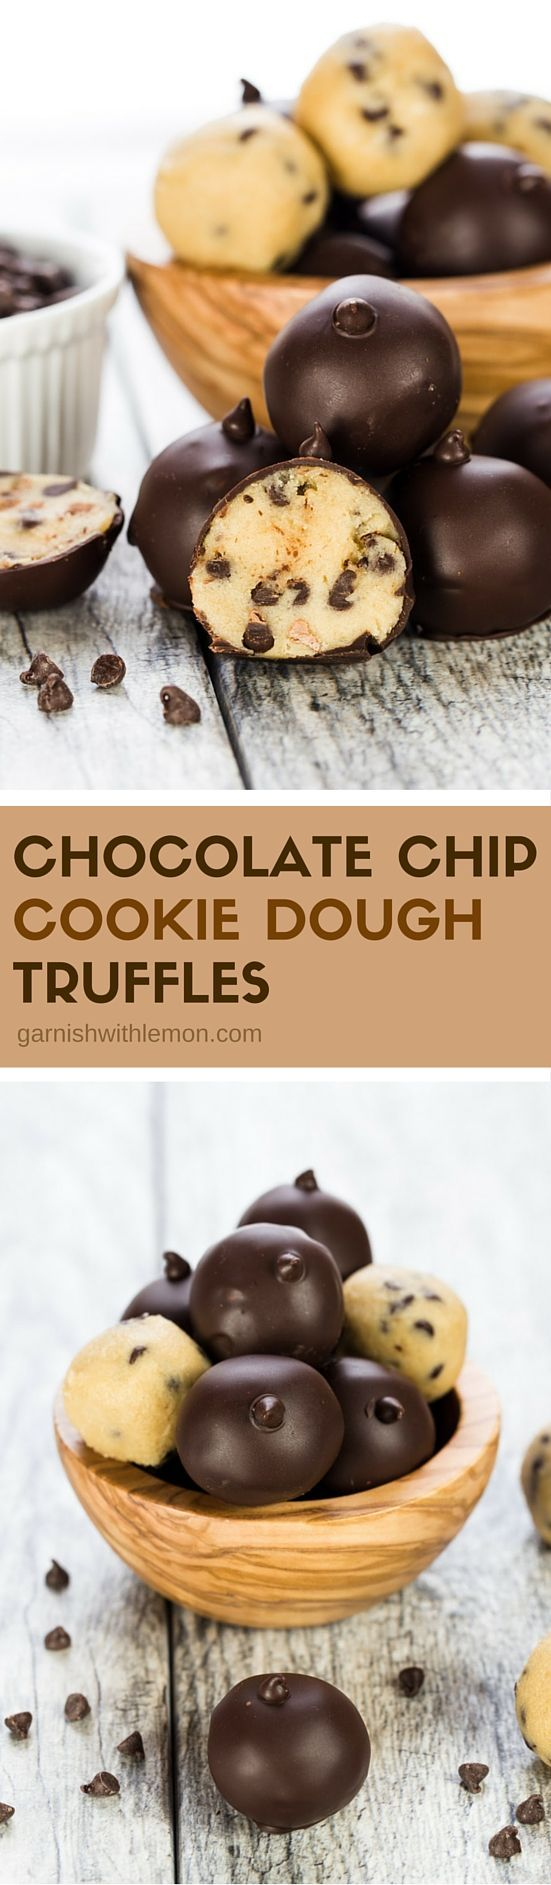 Cookie dough gifts recipes